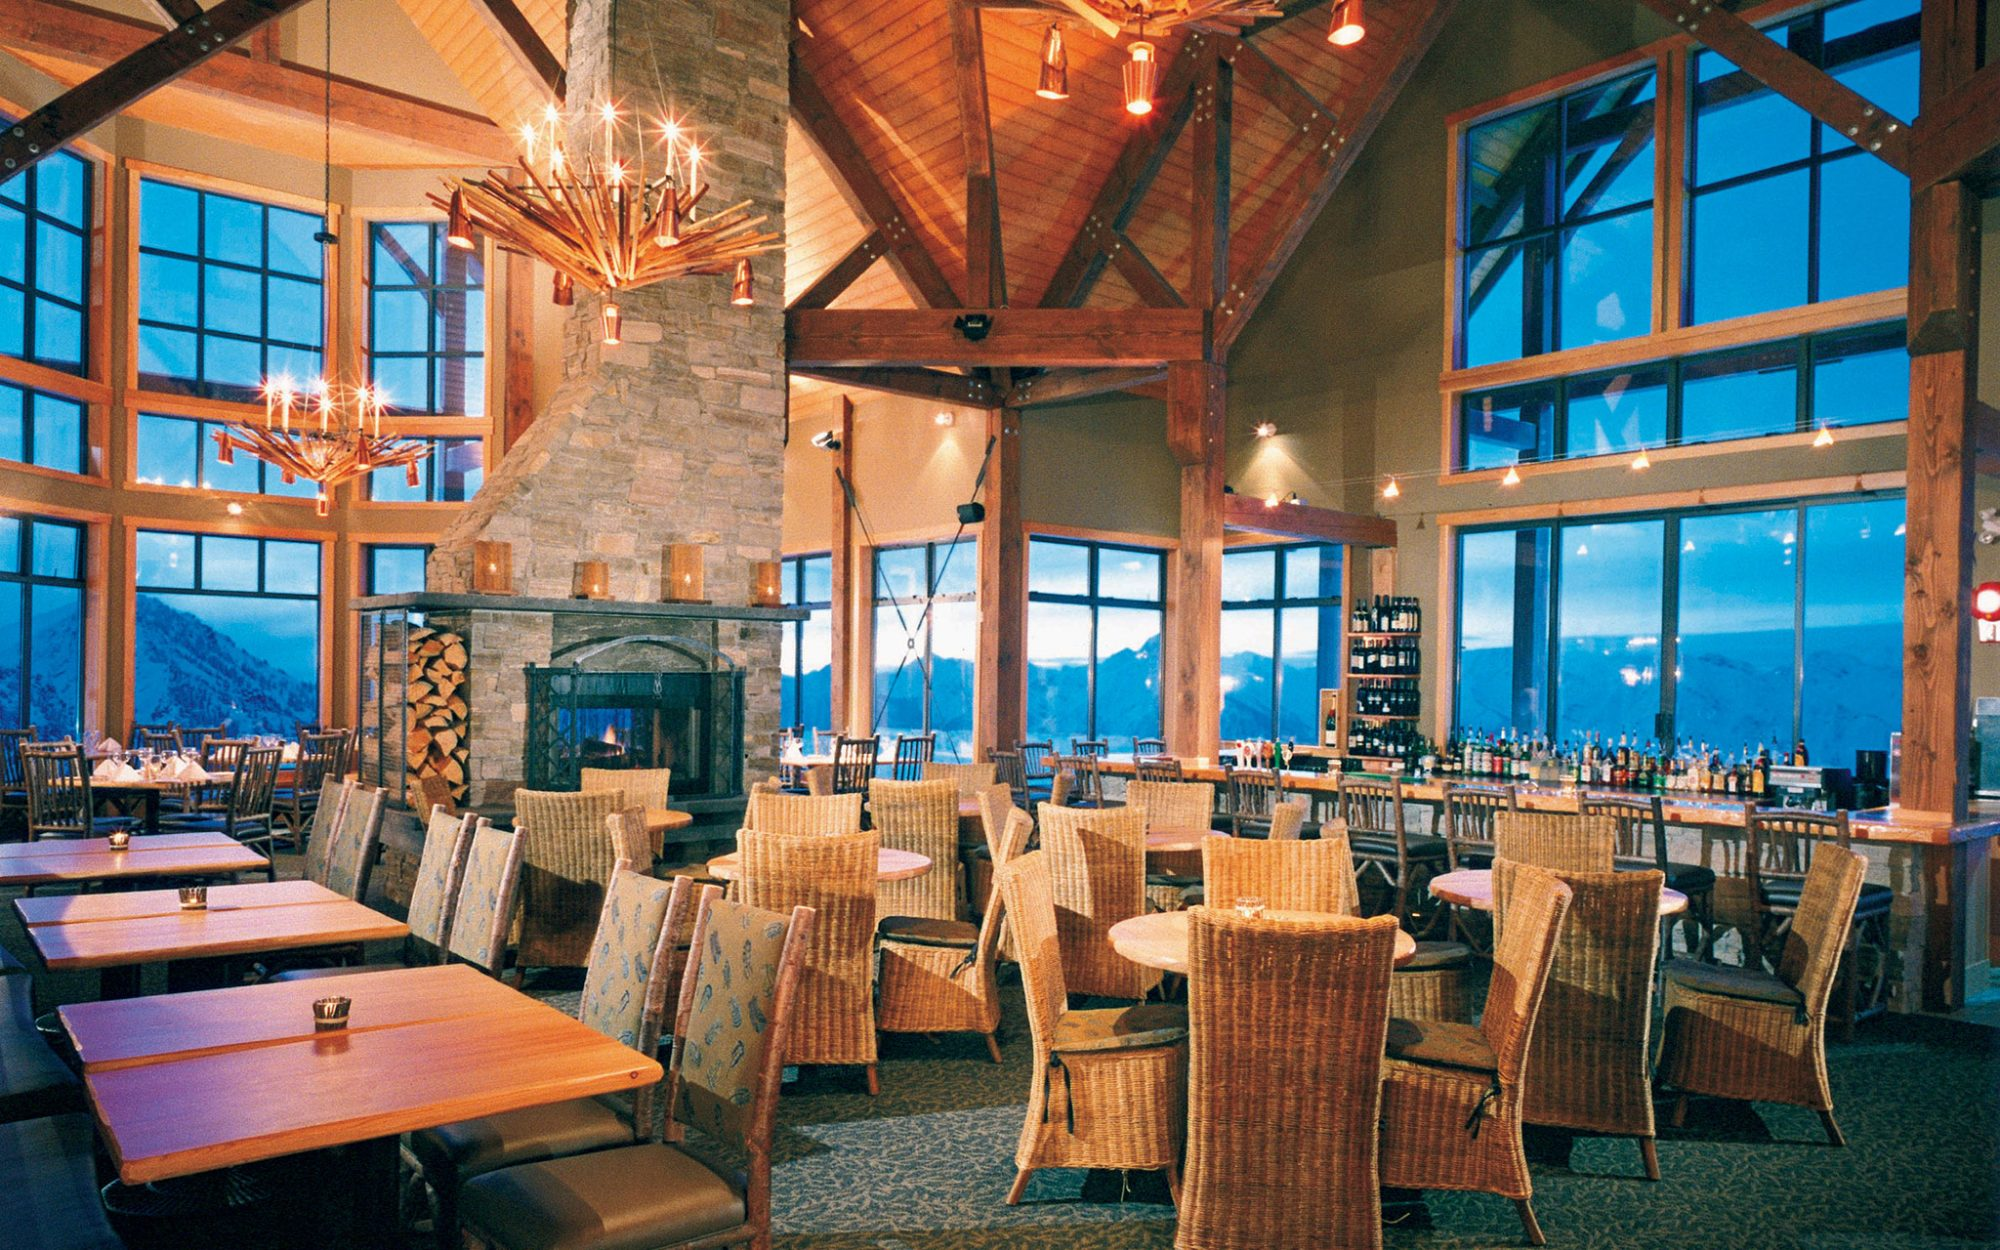 Eagle's Eye Restaurant, British Columbia, Canada